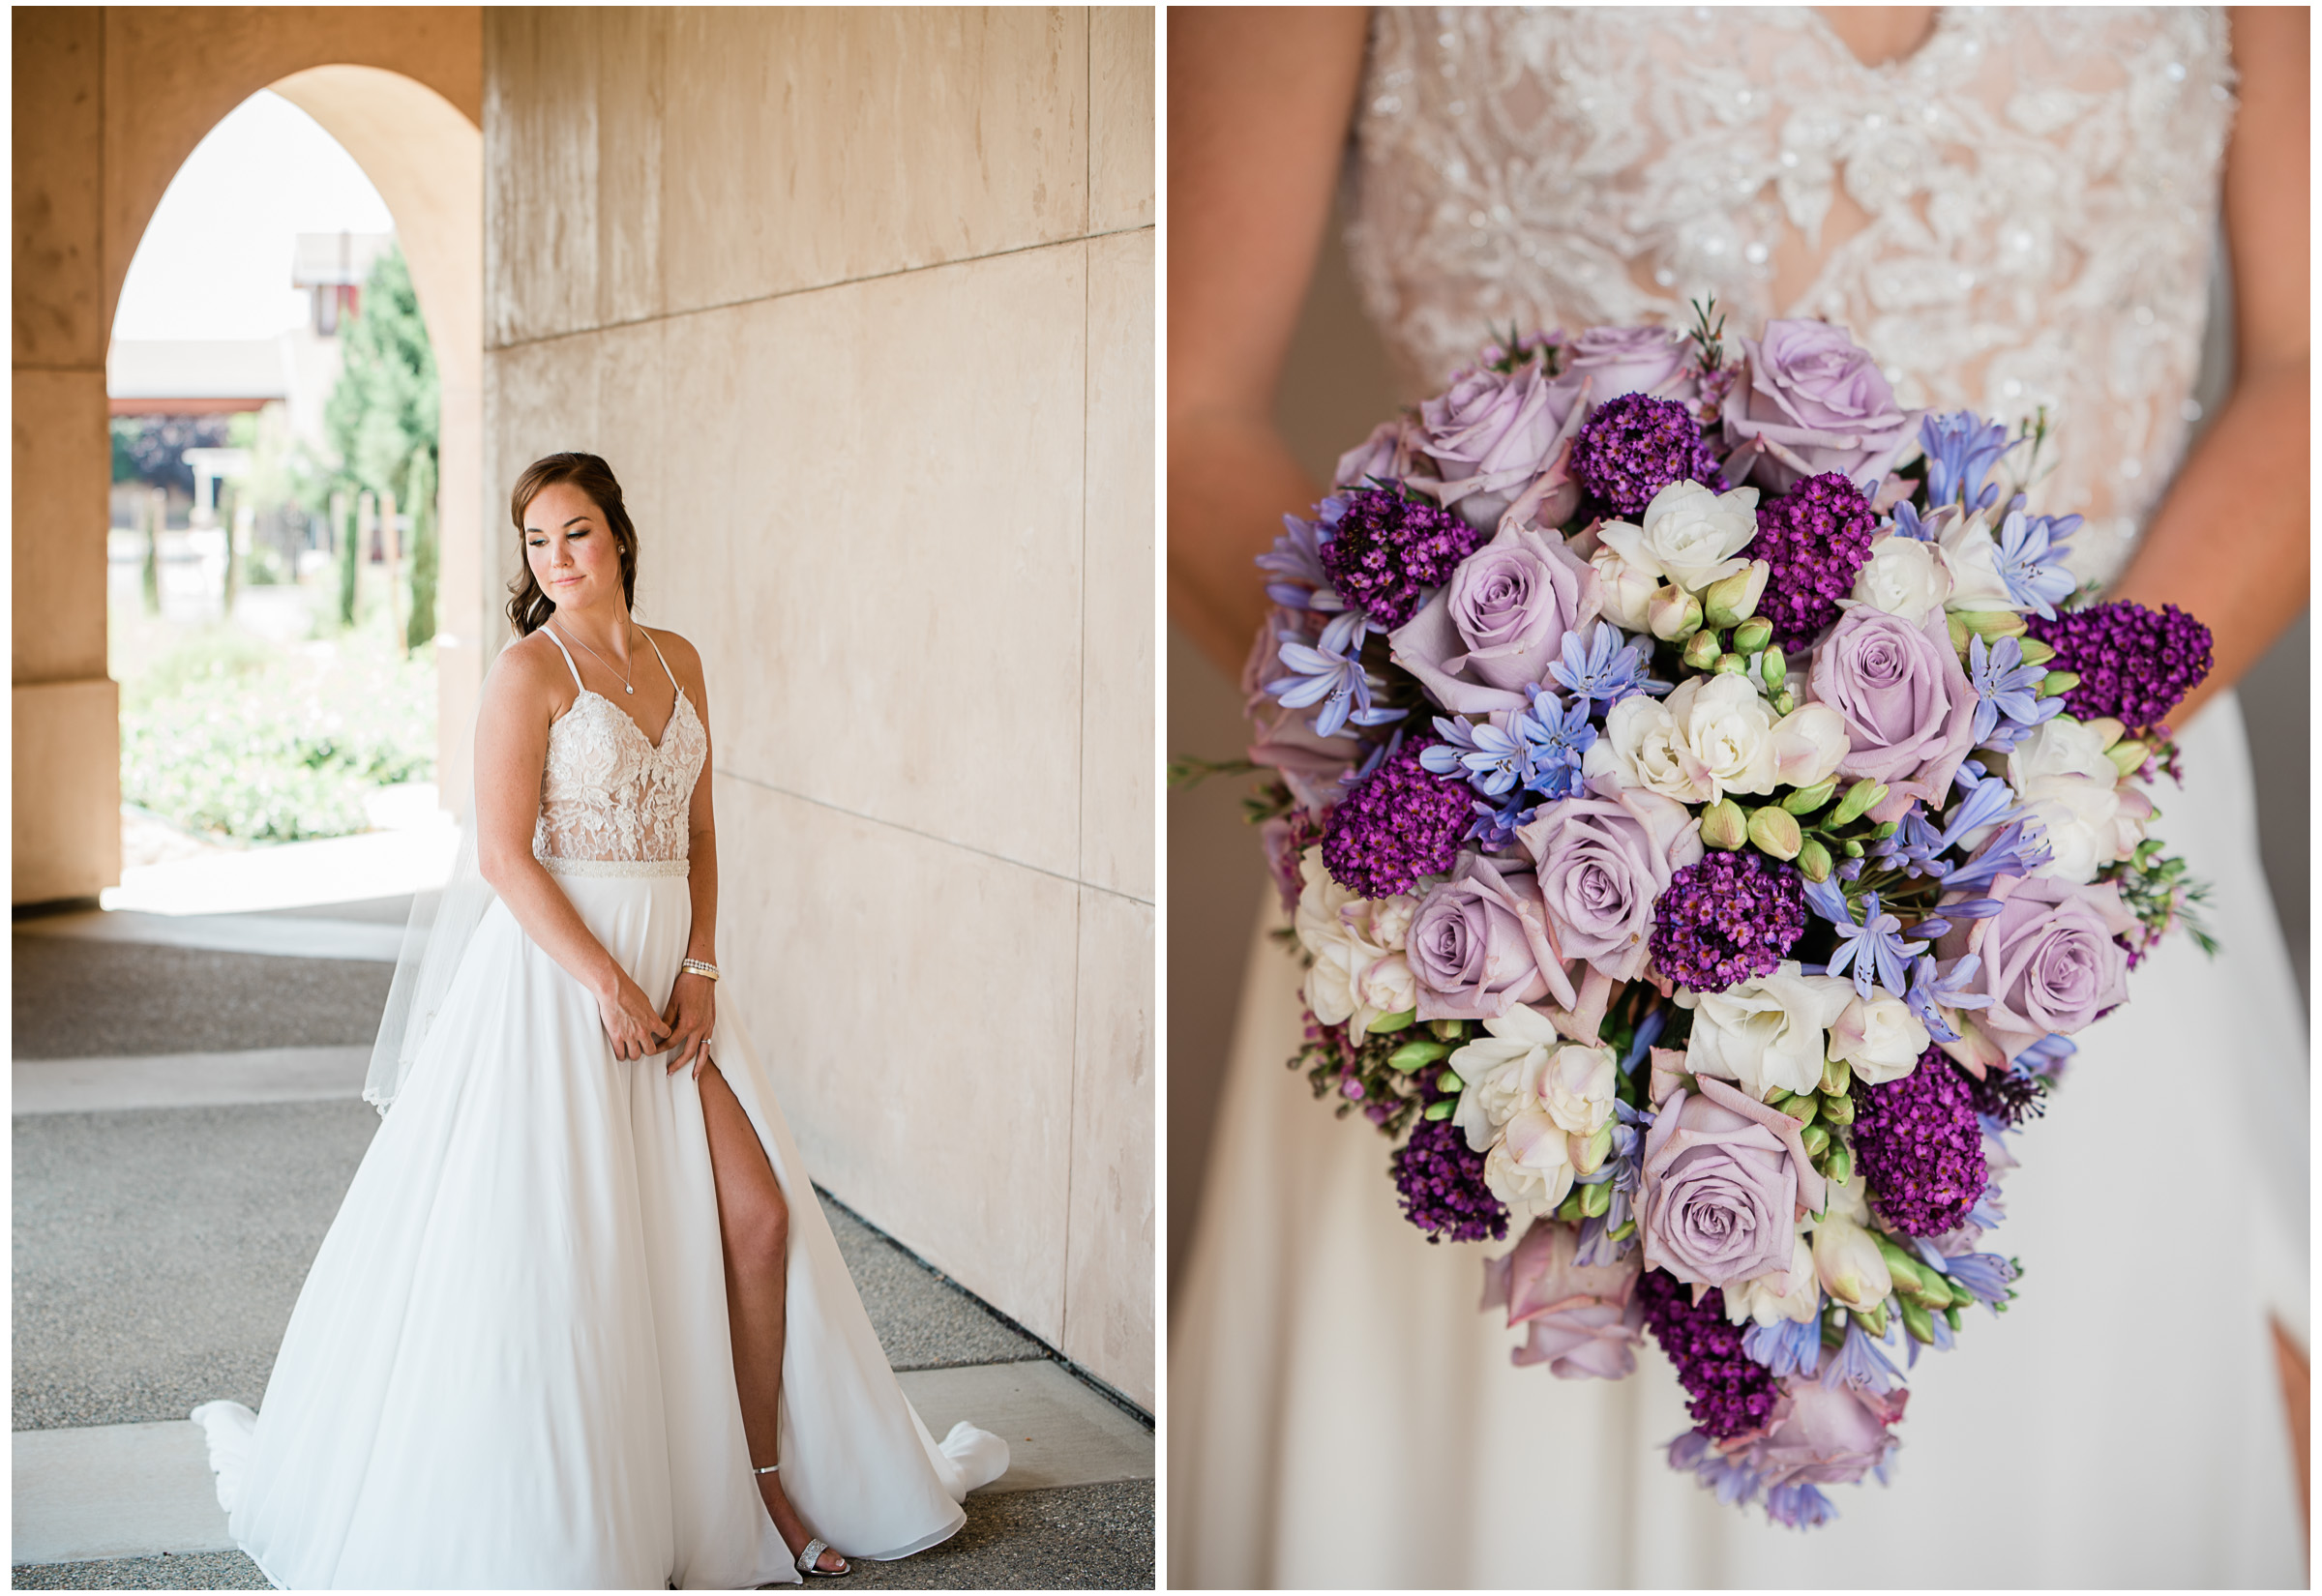 Loomis Wedding - Sacramento Photographer - Blue Goose - Justin Wilcox Photography - 8.jpg